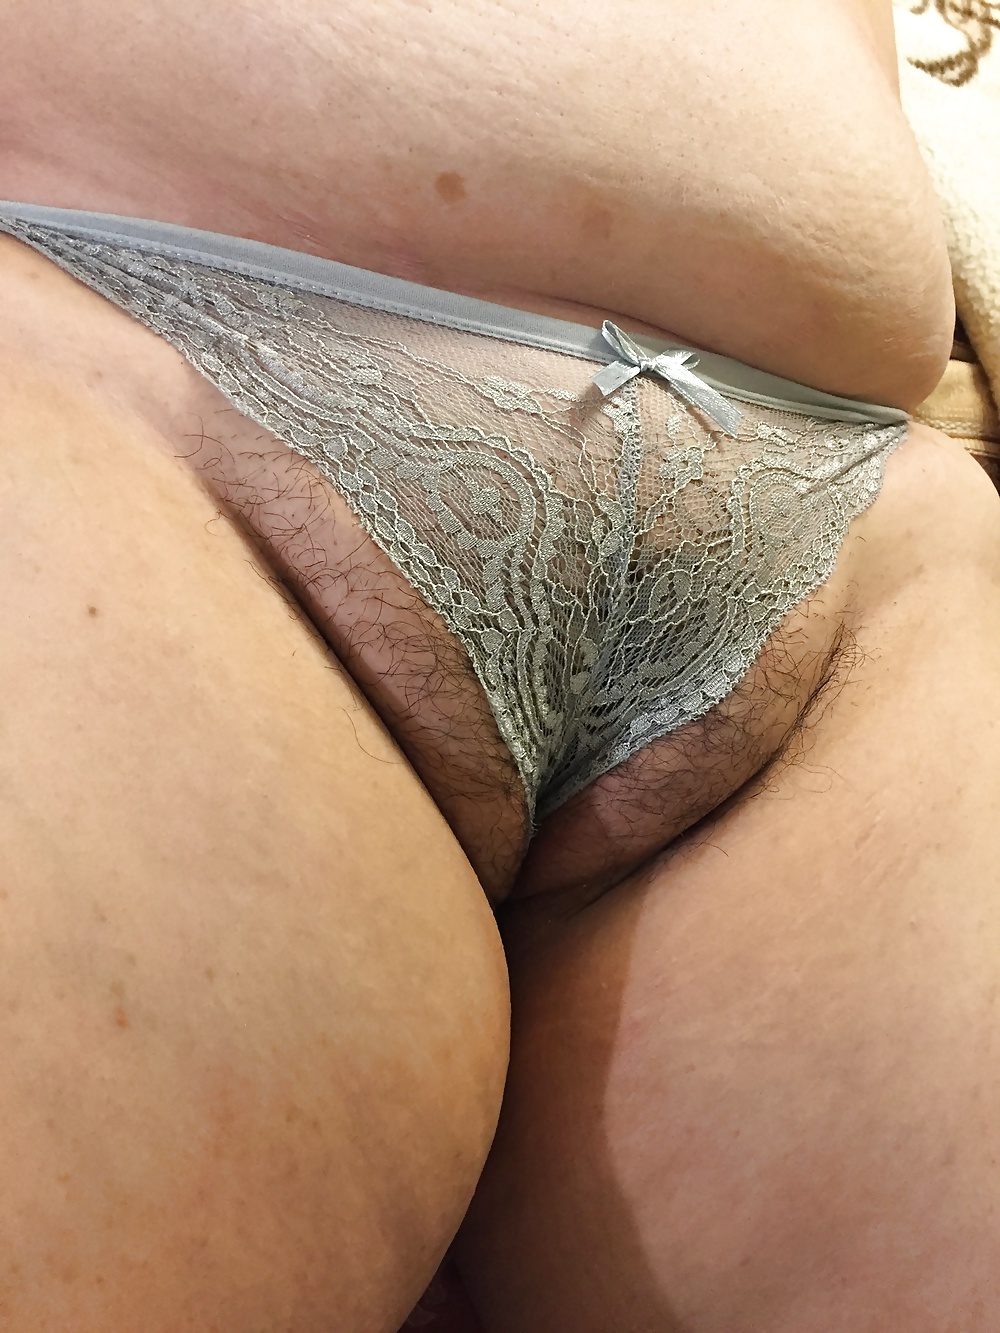 Showing Porn Images For Free Chubby Panties Porn